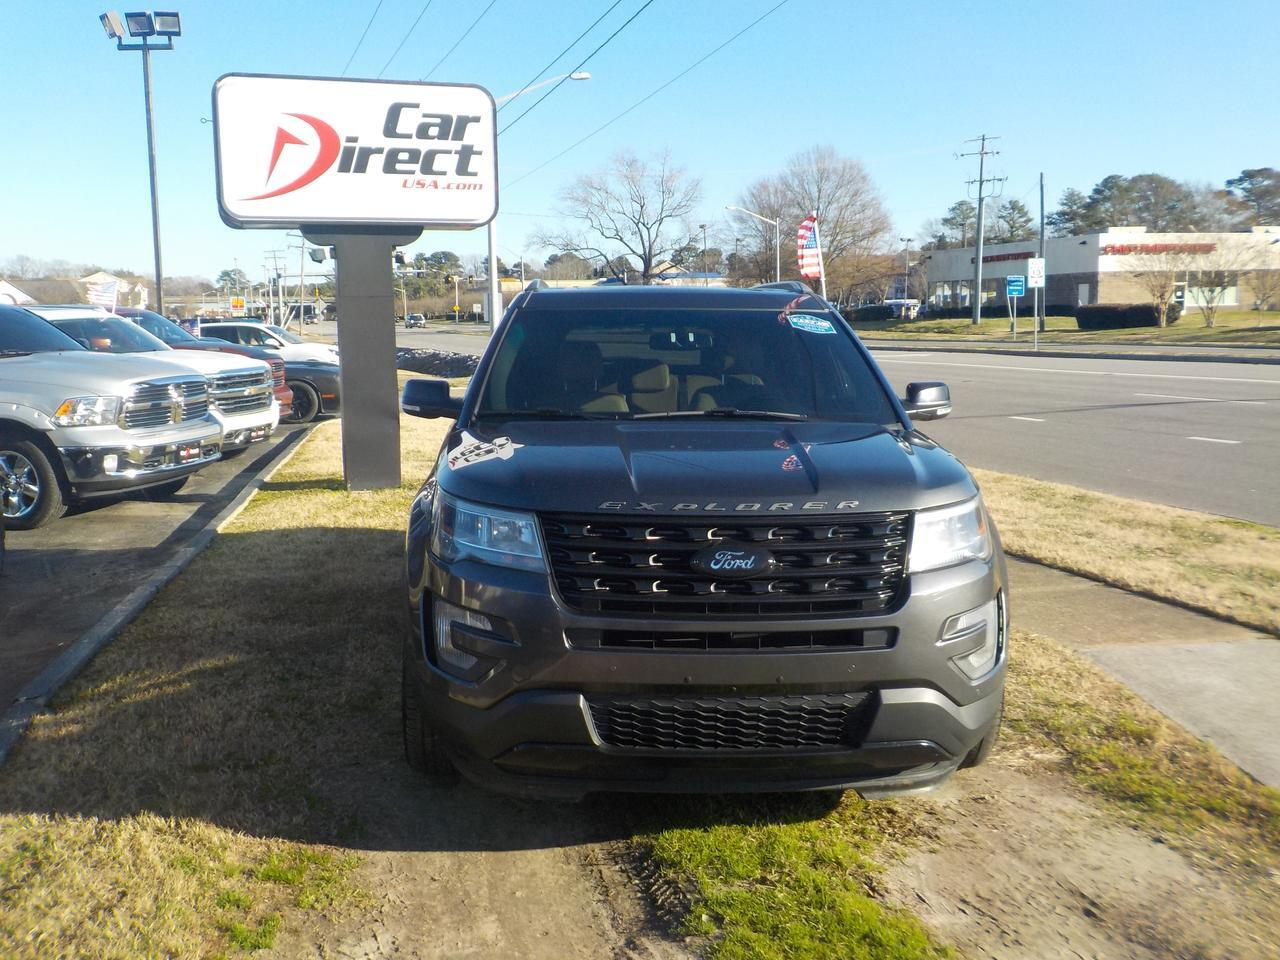 2016 FORD EXPLORER XLT 4X4, LIQUID METAL RIMS, HEATED SEATS, LEATHER, TOW PACKAGE, REMOTE START, SUNROOF, BACKUP CAM! Virginia Beach VA